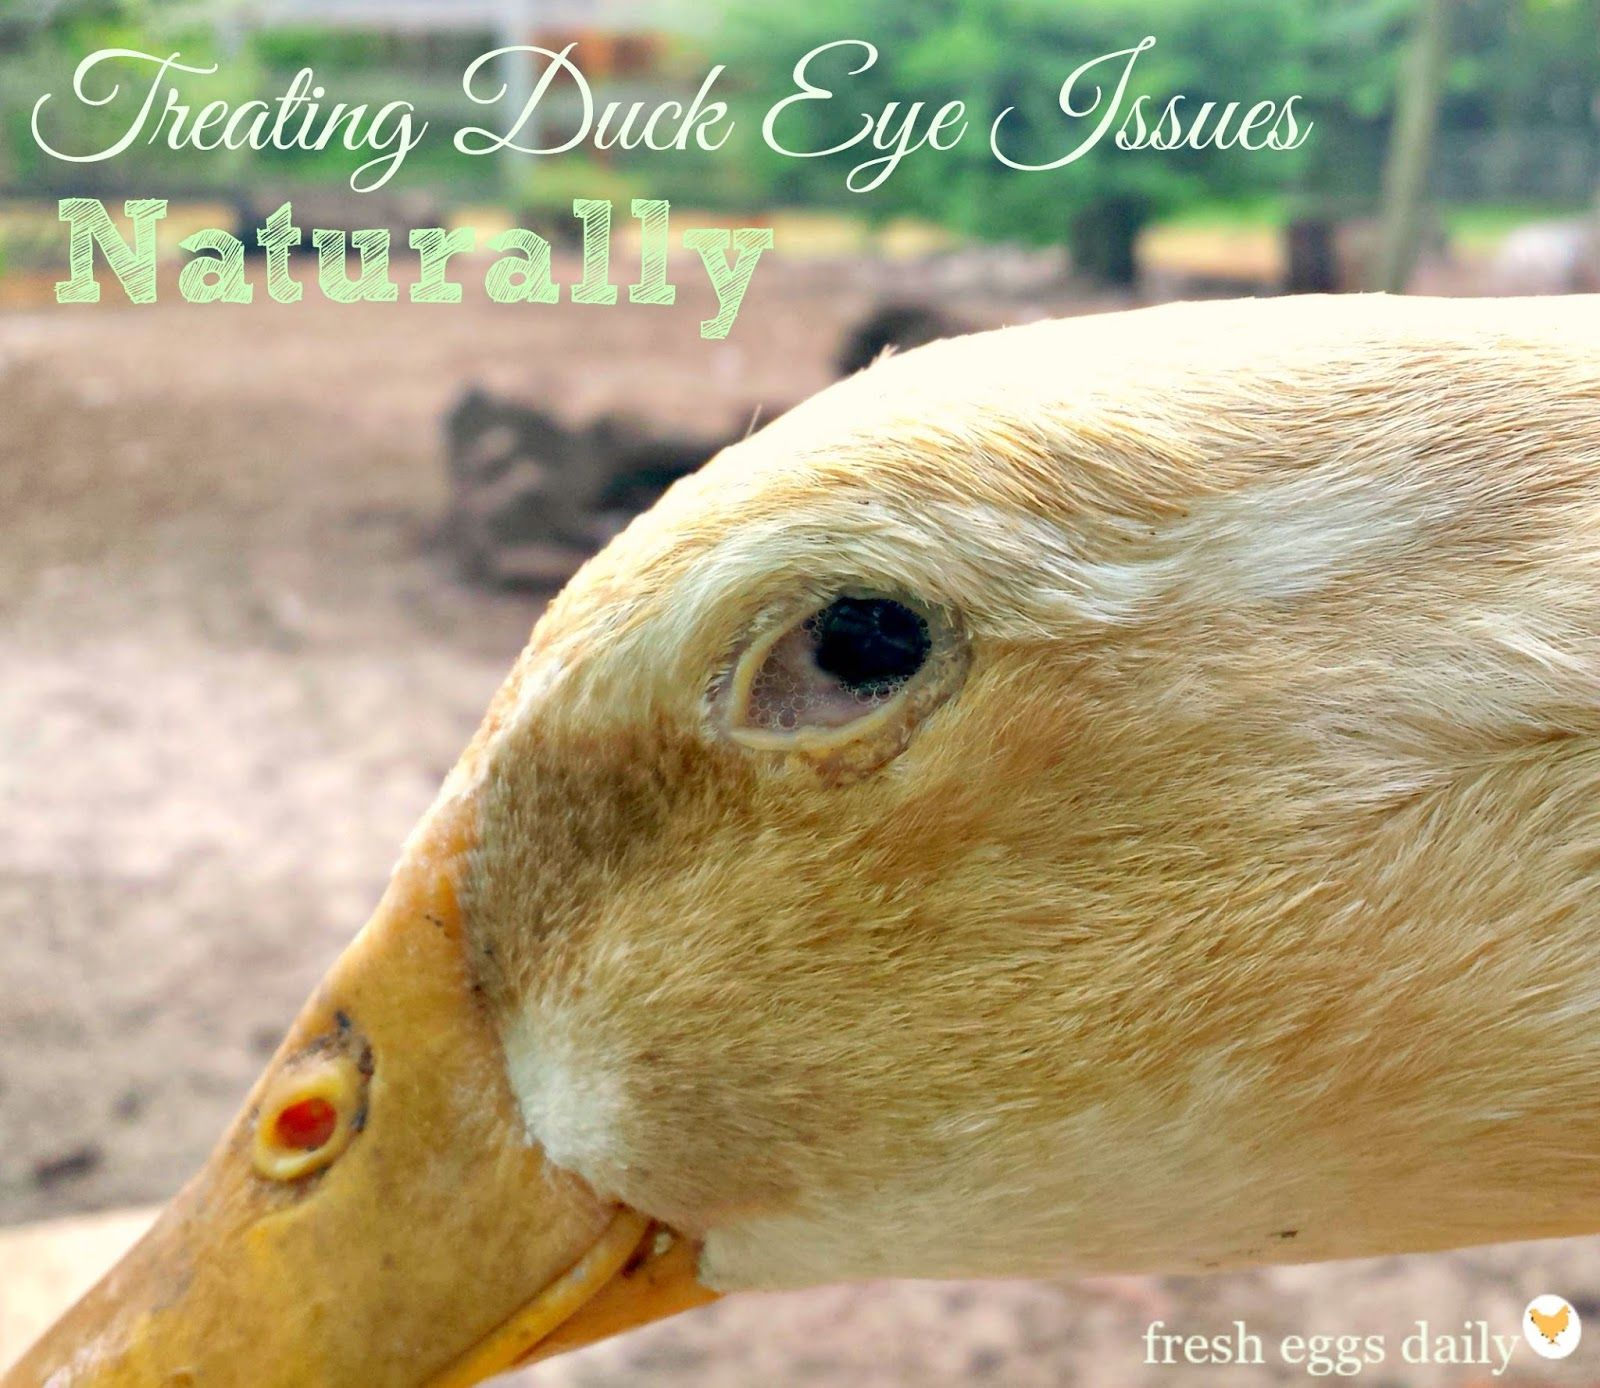 treating foamy eye and sinus issues in ducks naturally fresh